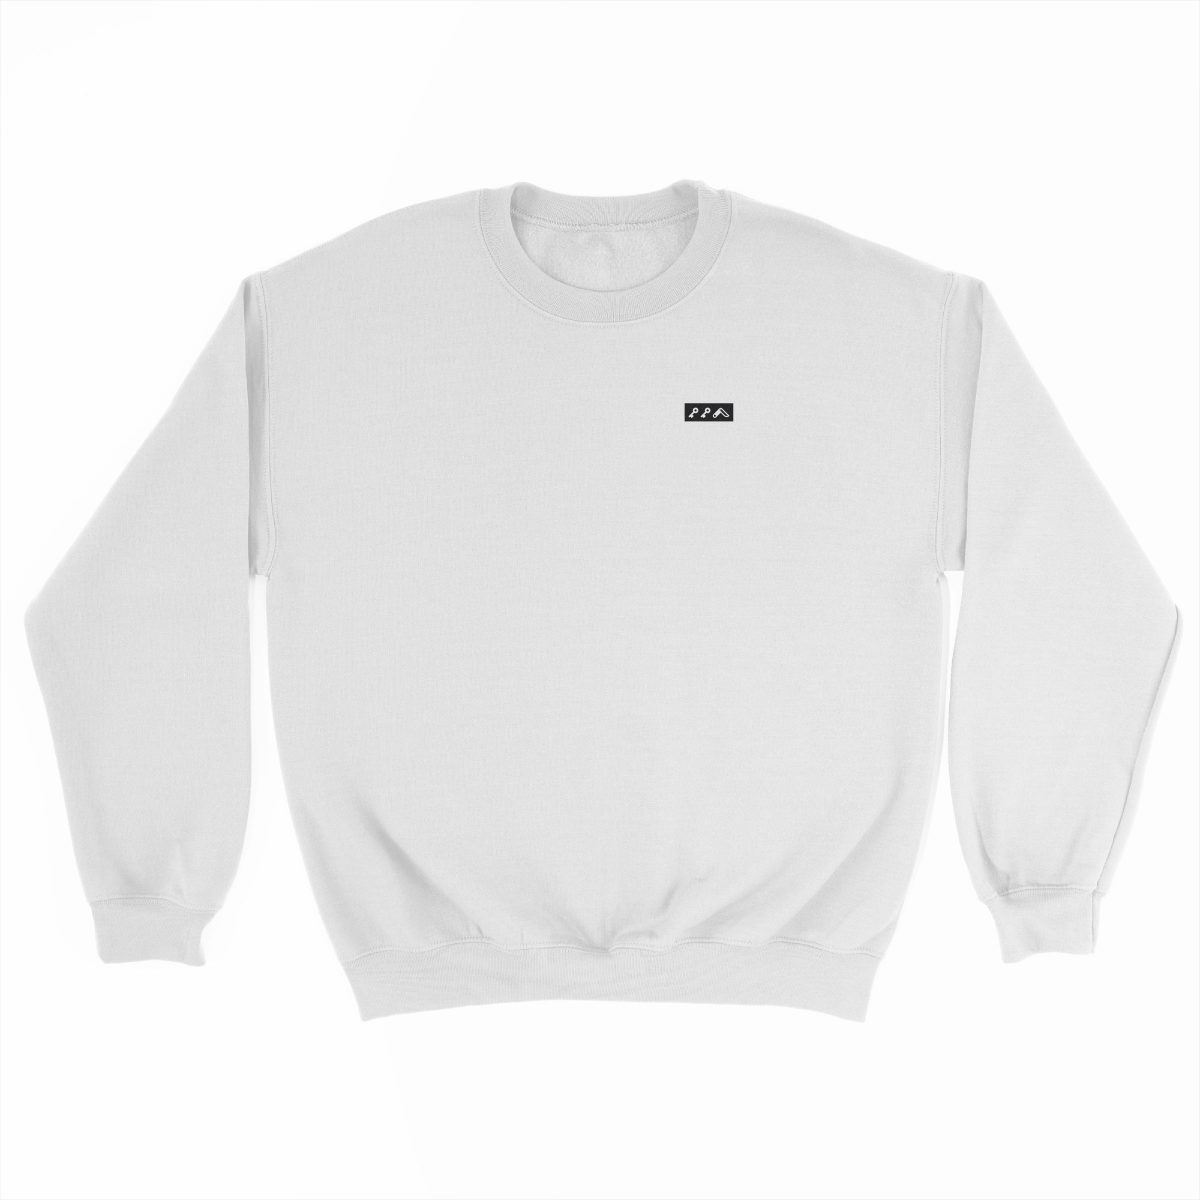 KIKICUTT black icon on a white really soft sweatshirt at kikicutt.com